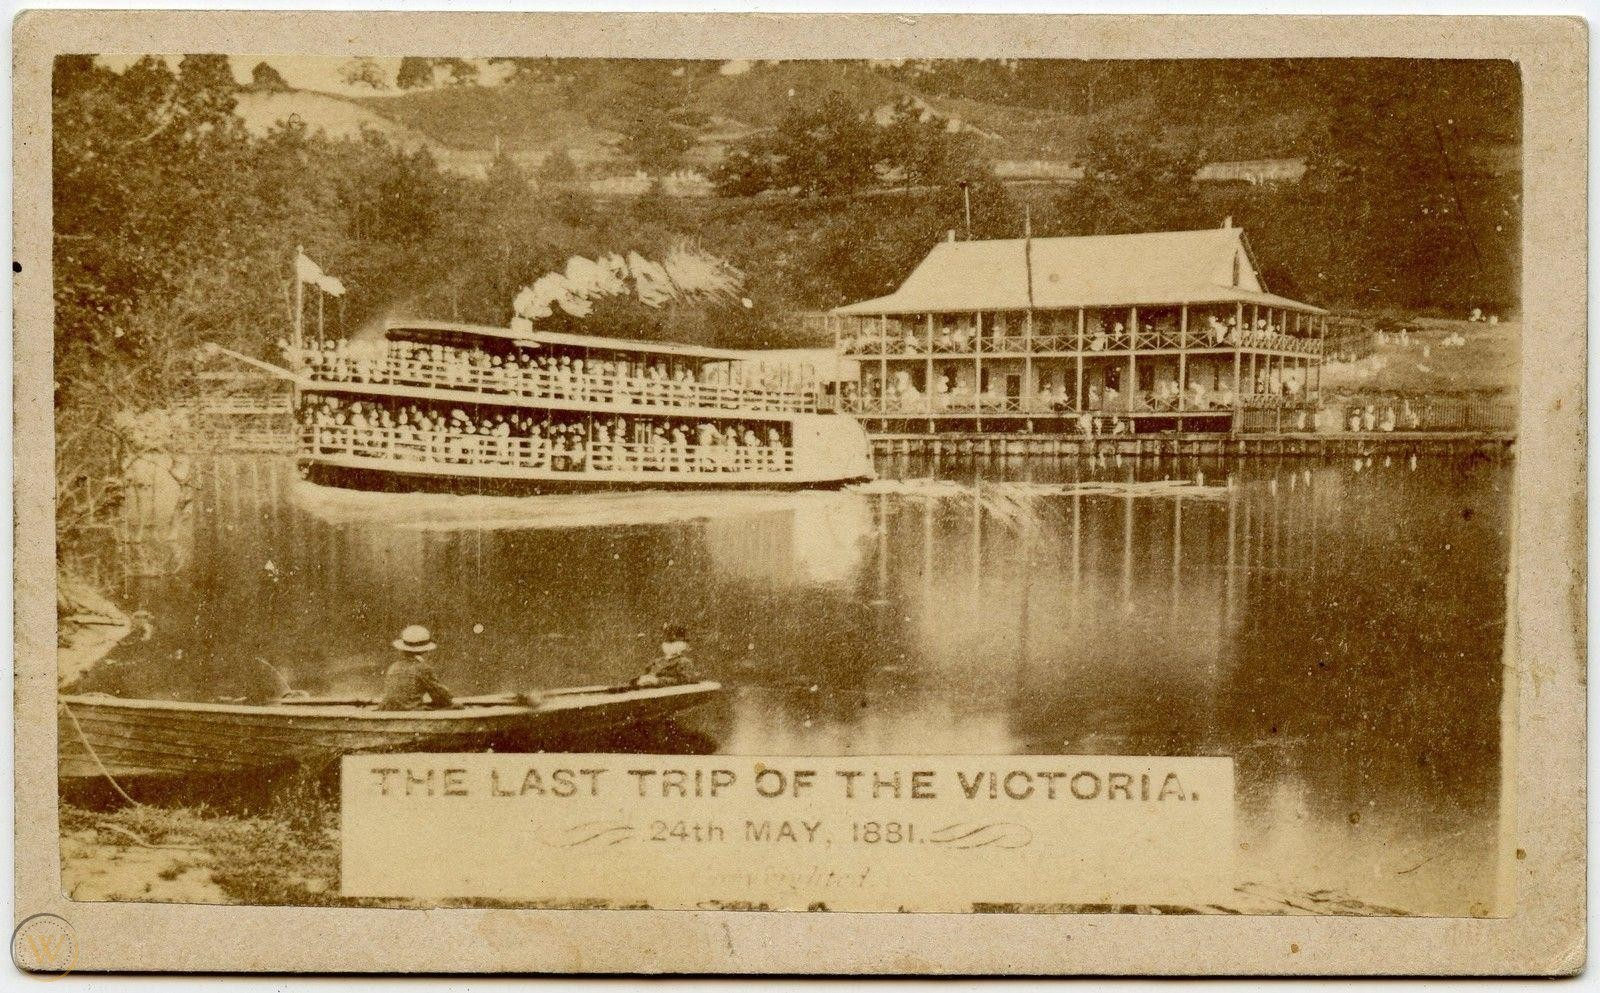 A sepia toned image of a boat full of people leaving a wharf also full of people.